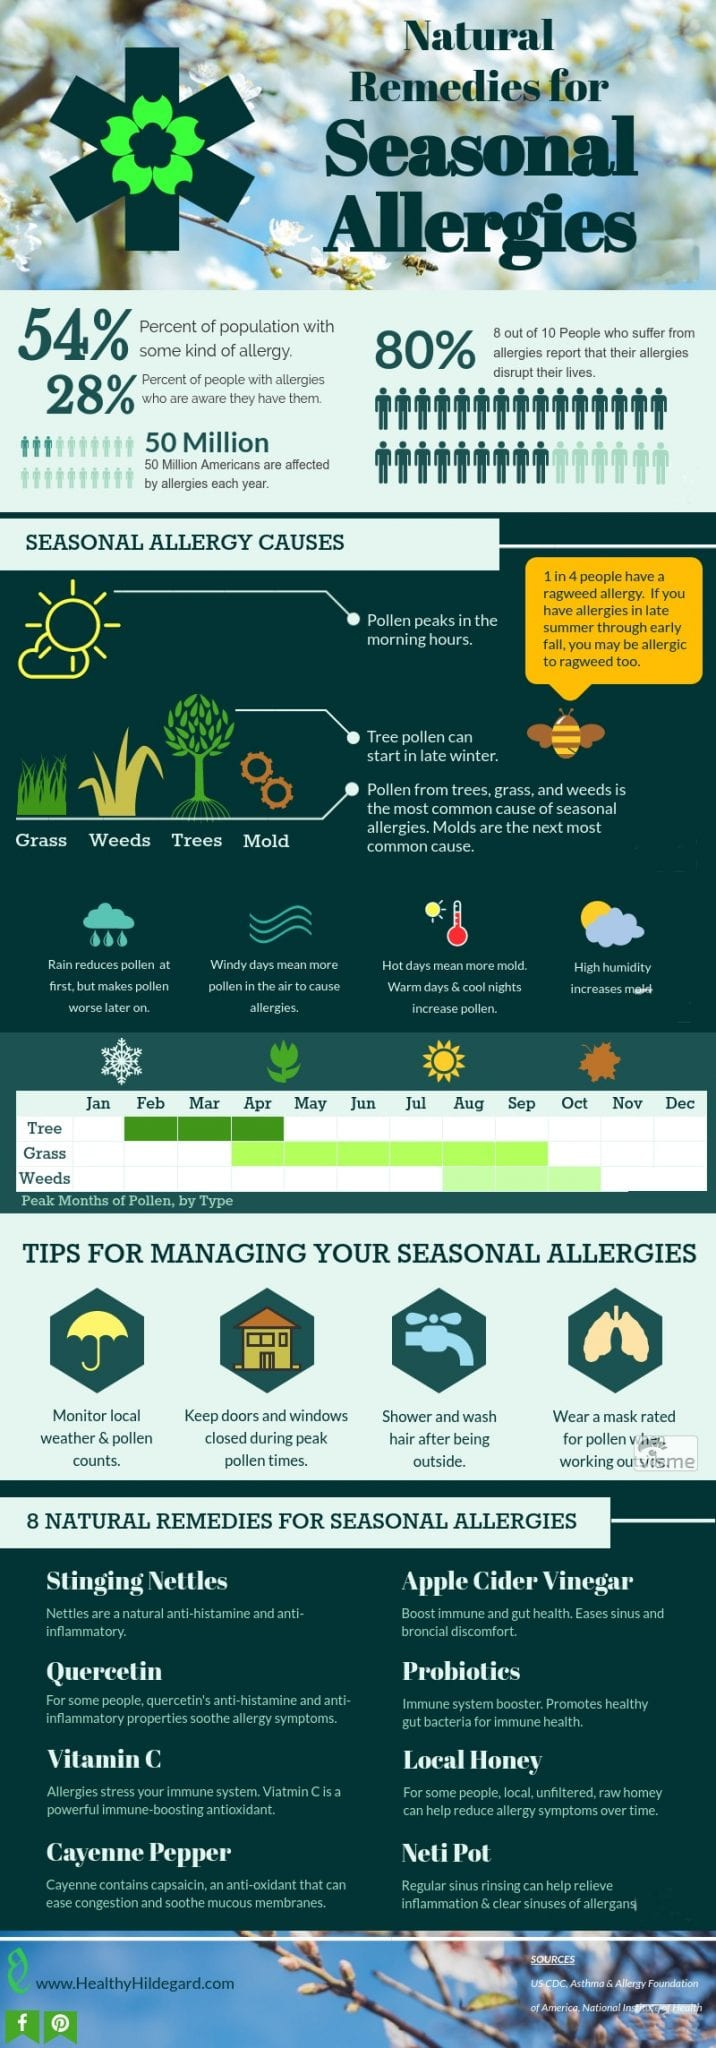 Eight Natural Remedies for Seasonal Allergies - Healthy